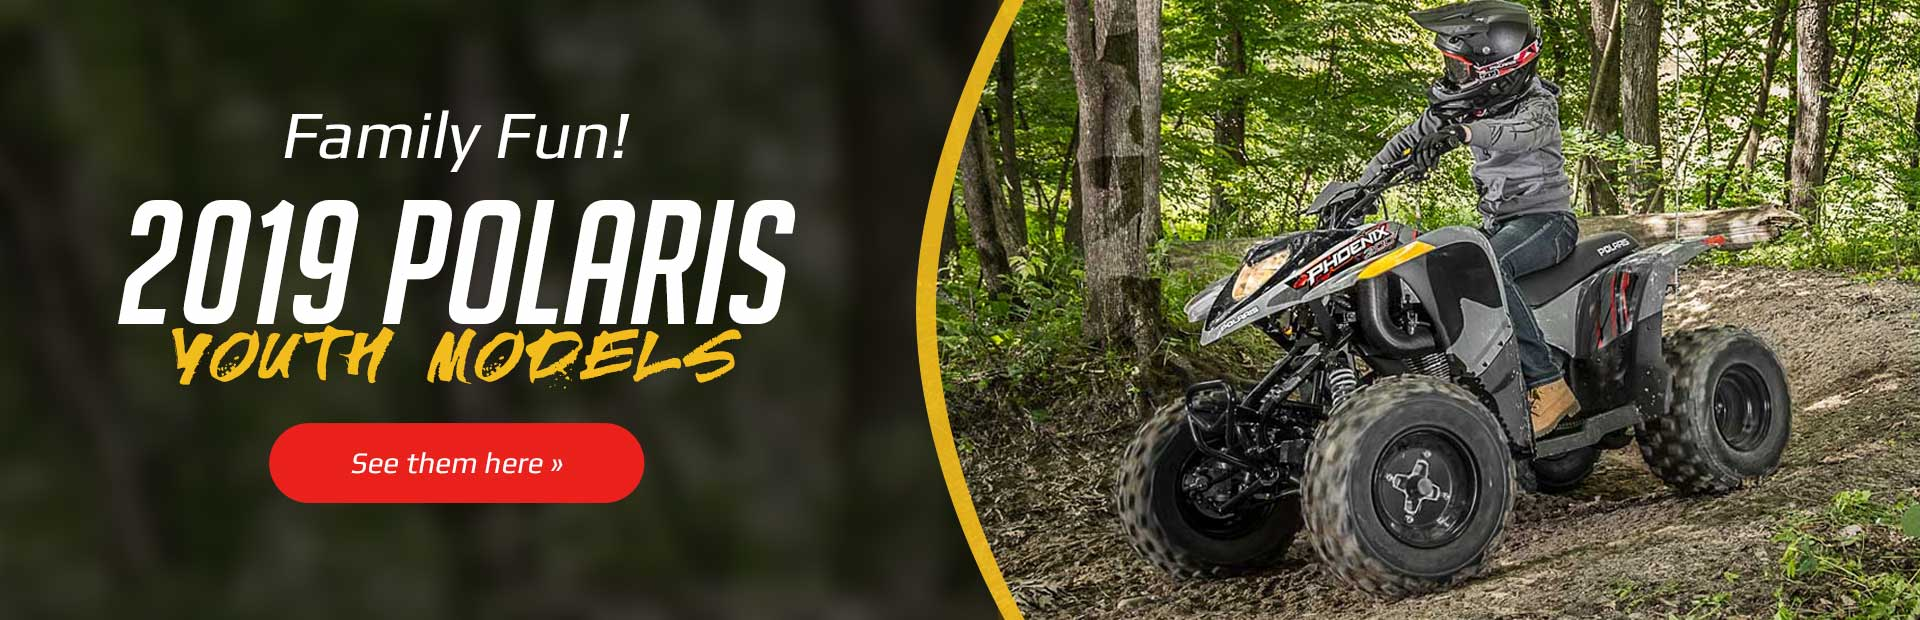 2019 Polaris Youth Models: Click here to view the models.